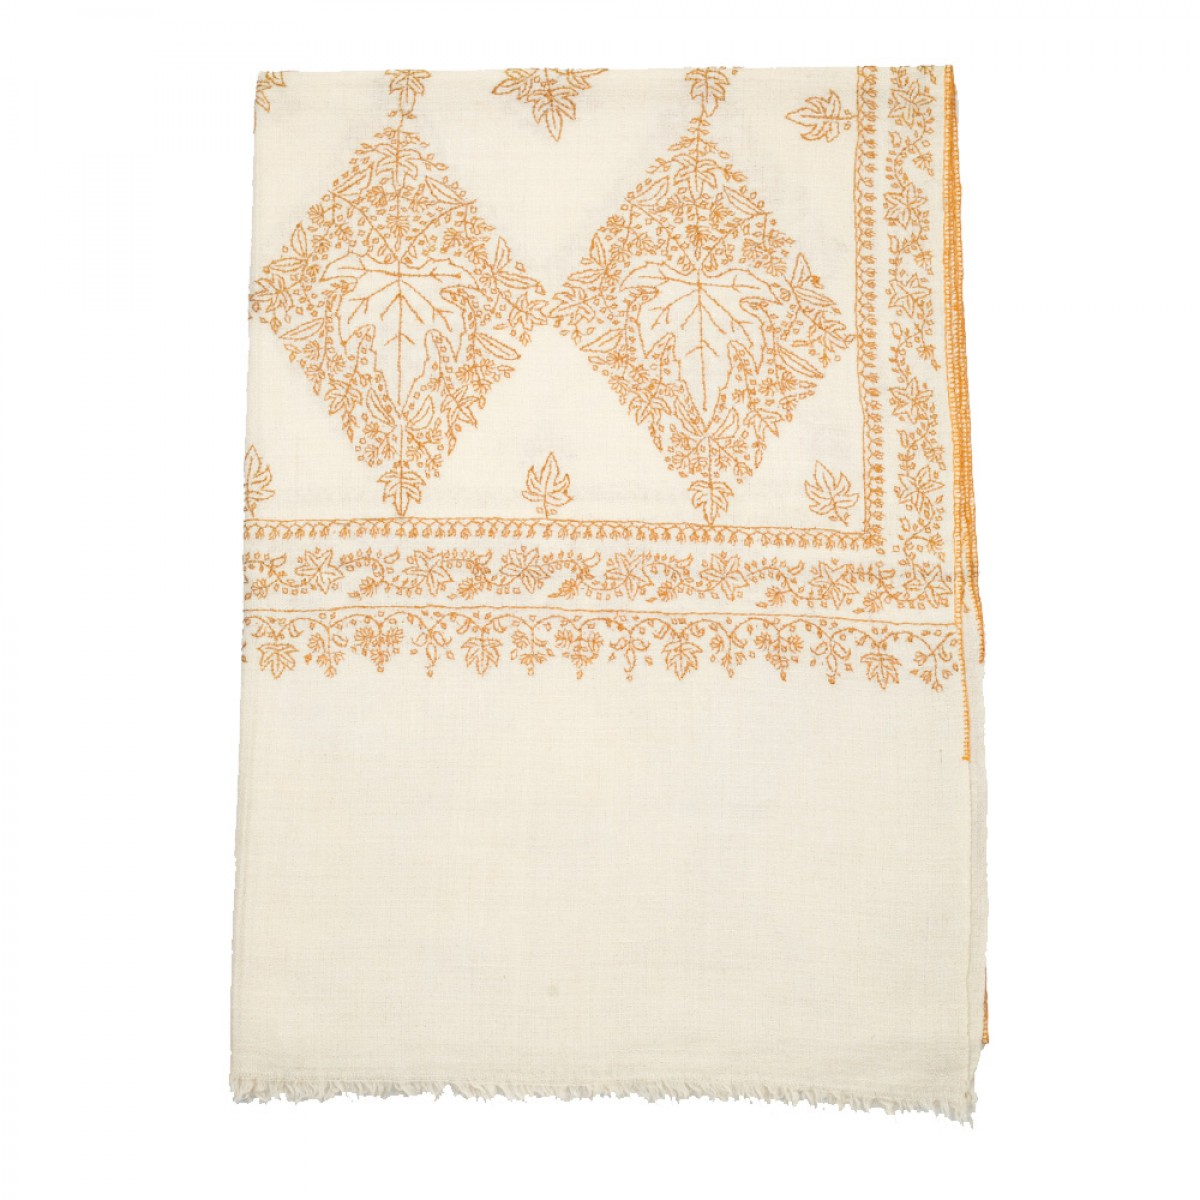 Embroidered Pashmina Stole - Chinar Leaf Natural